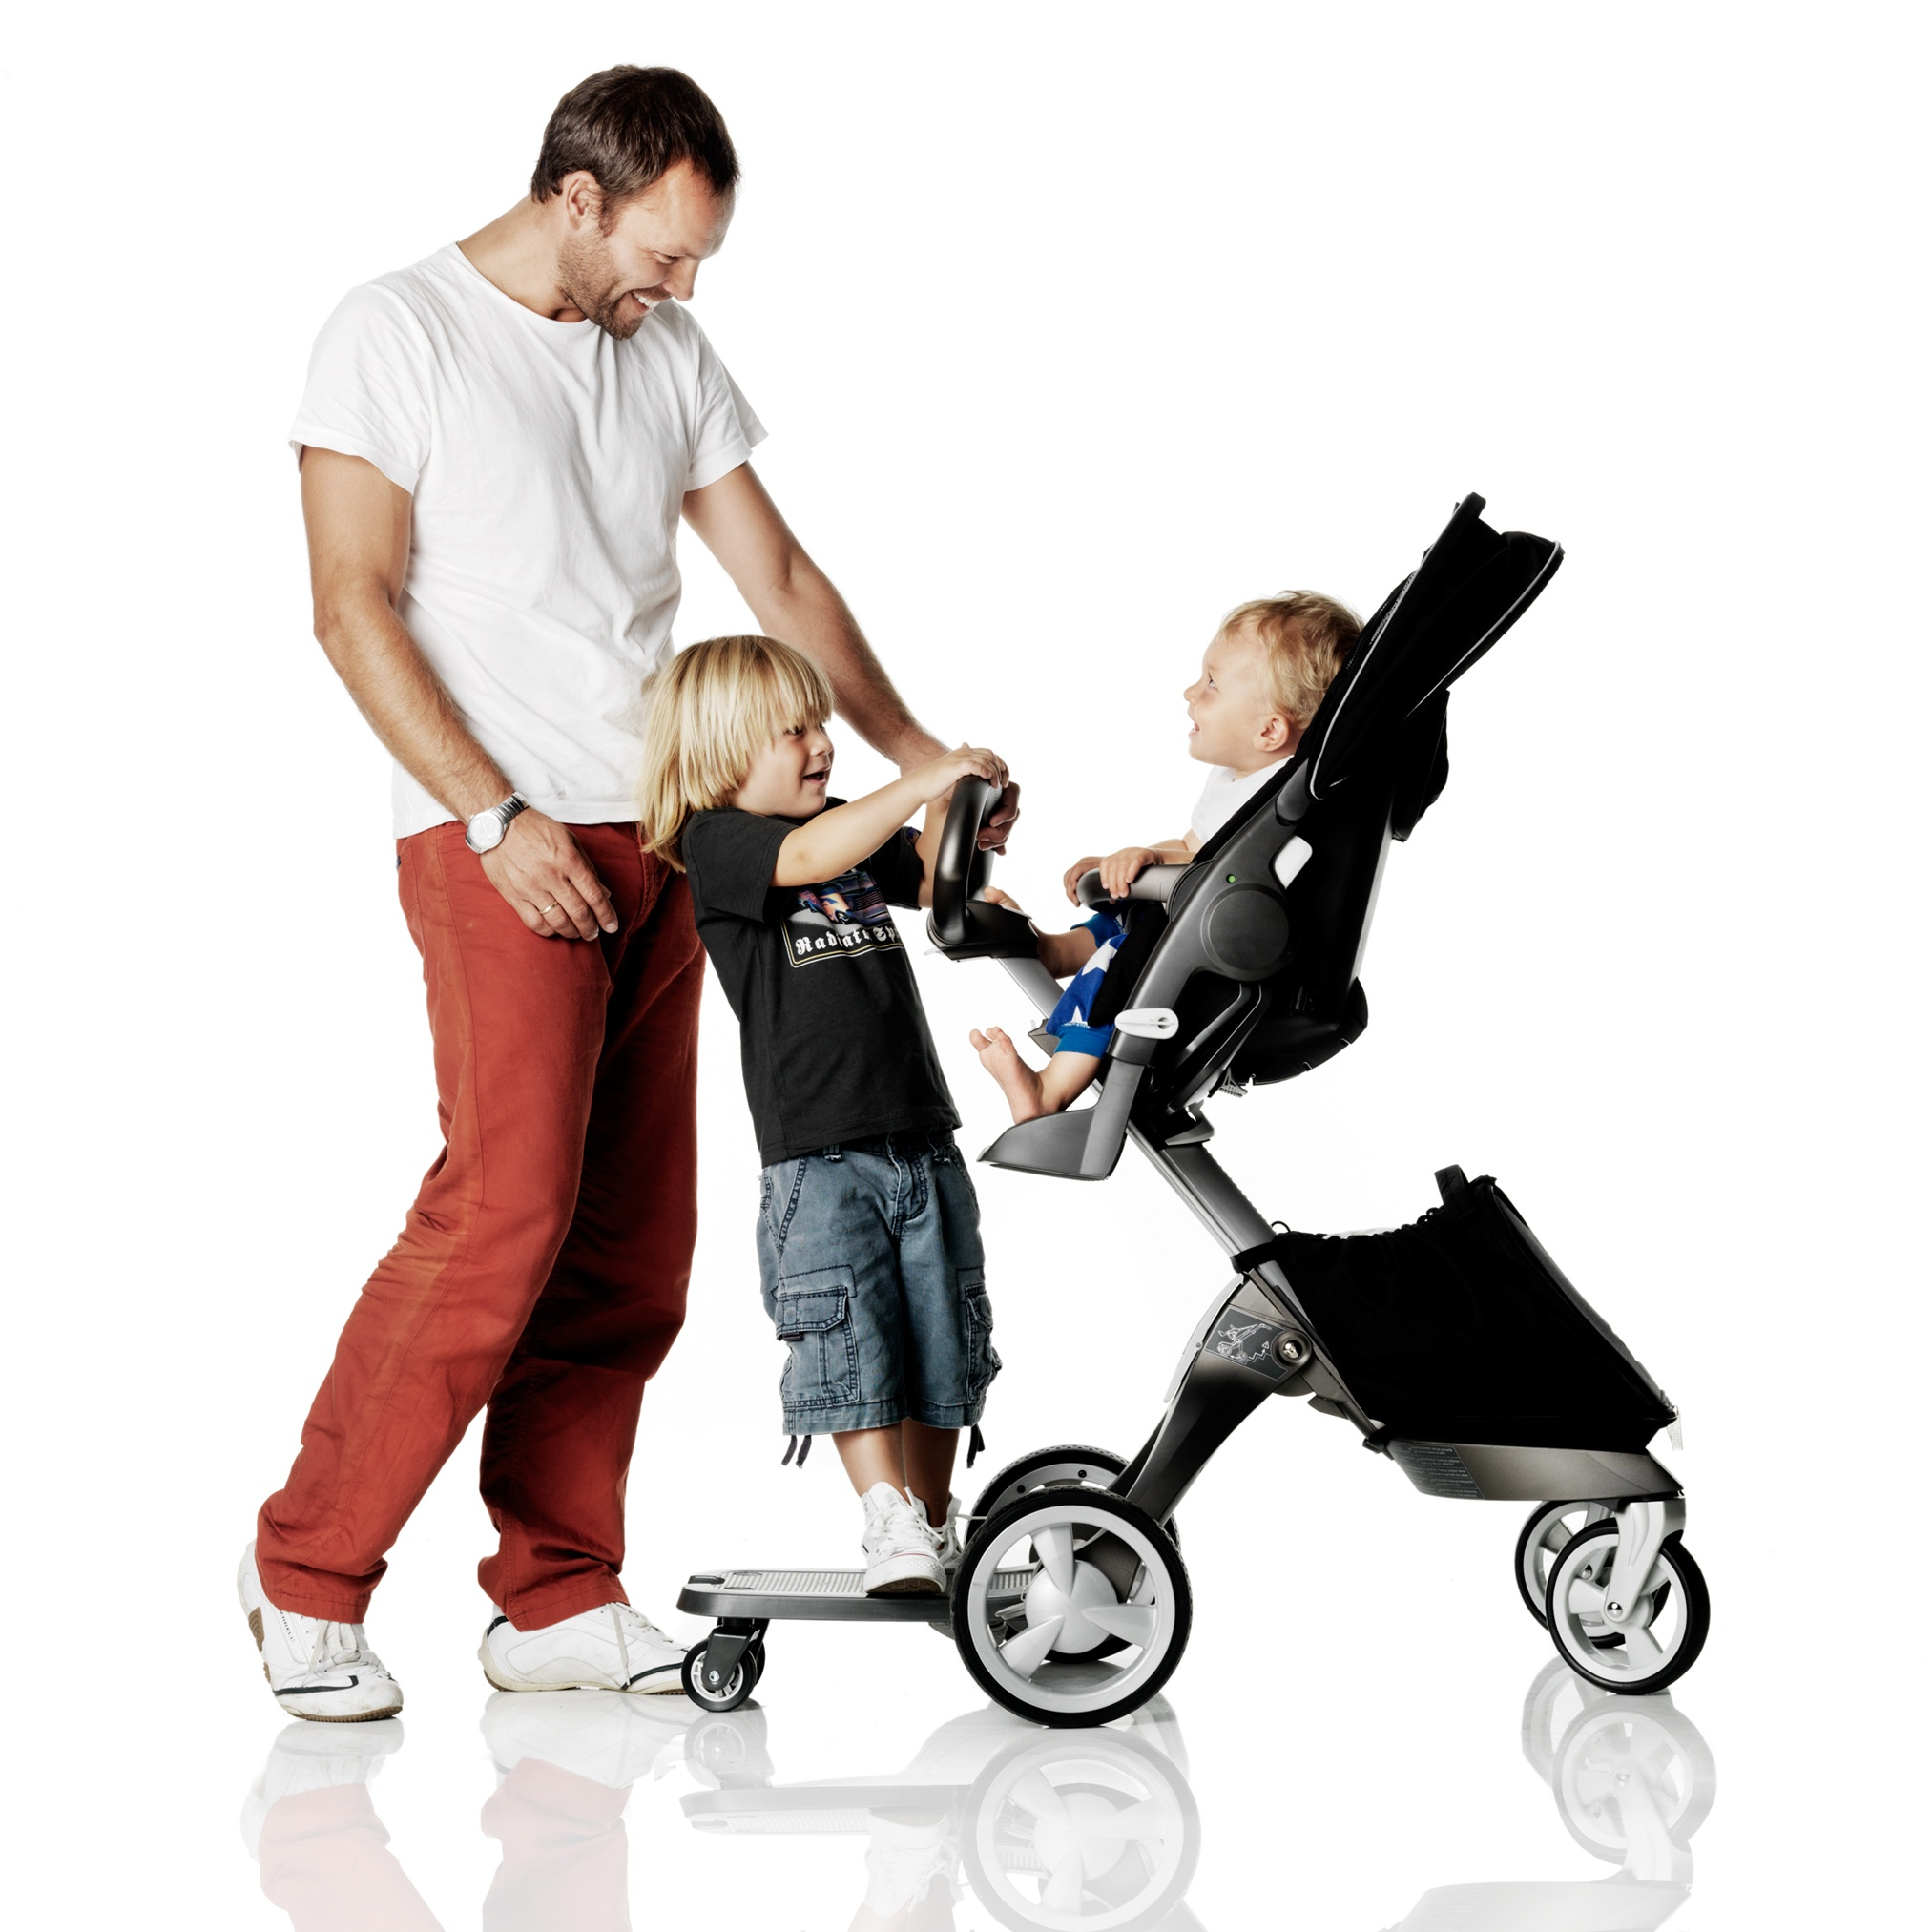 stokke rolls out more features for xplory – the next kid thing - as